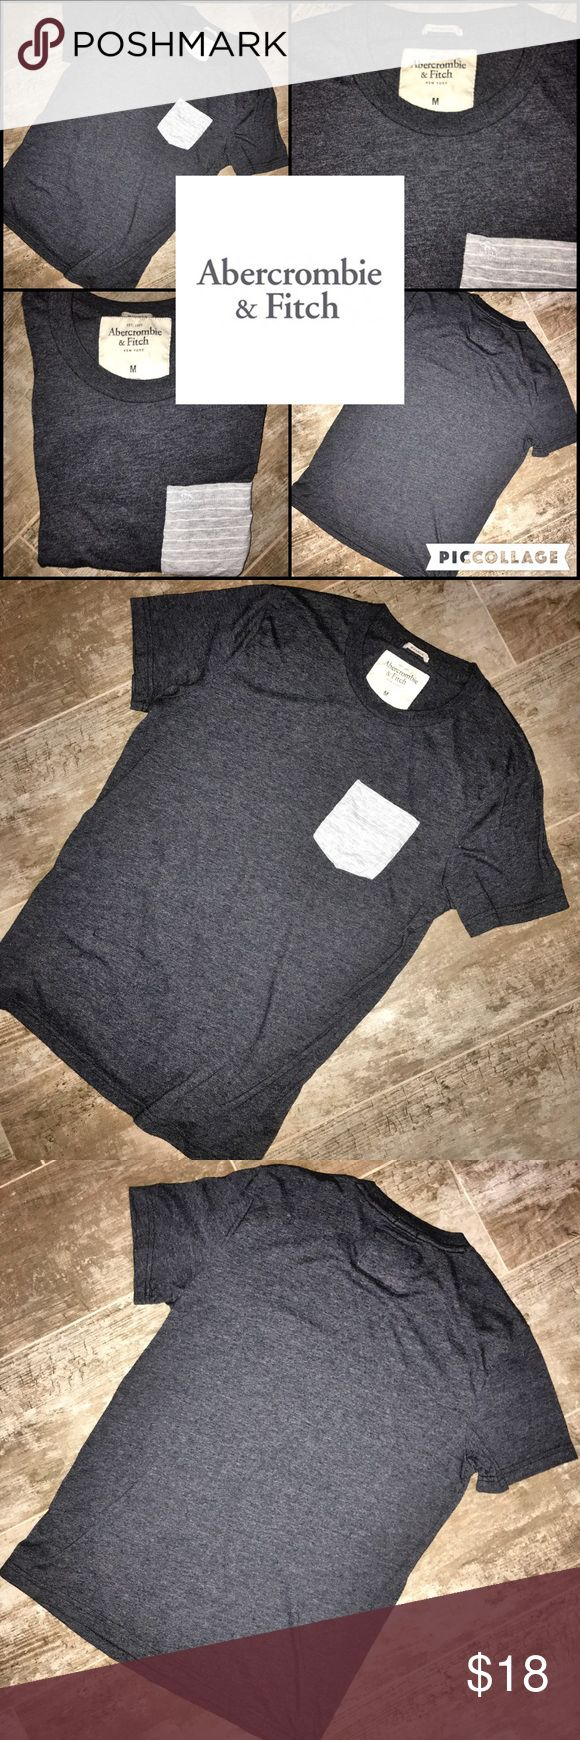 Abercrombie Men's Contrast Pocket Tee Size M Abercrombie Men's Contrast Pocket Tee Size M - *LIKE NEW* - Worn Once On Recording Set! Abercrombie & Fitch Shirts Tees - Short Sleeve